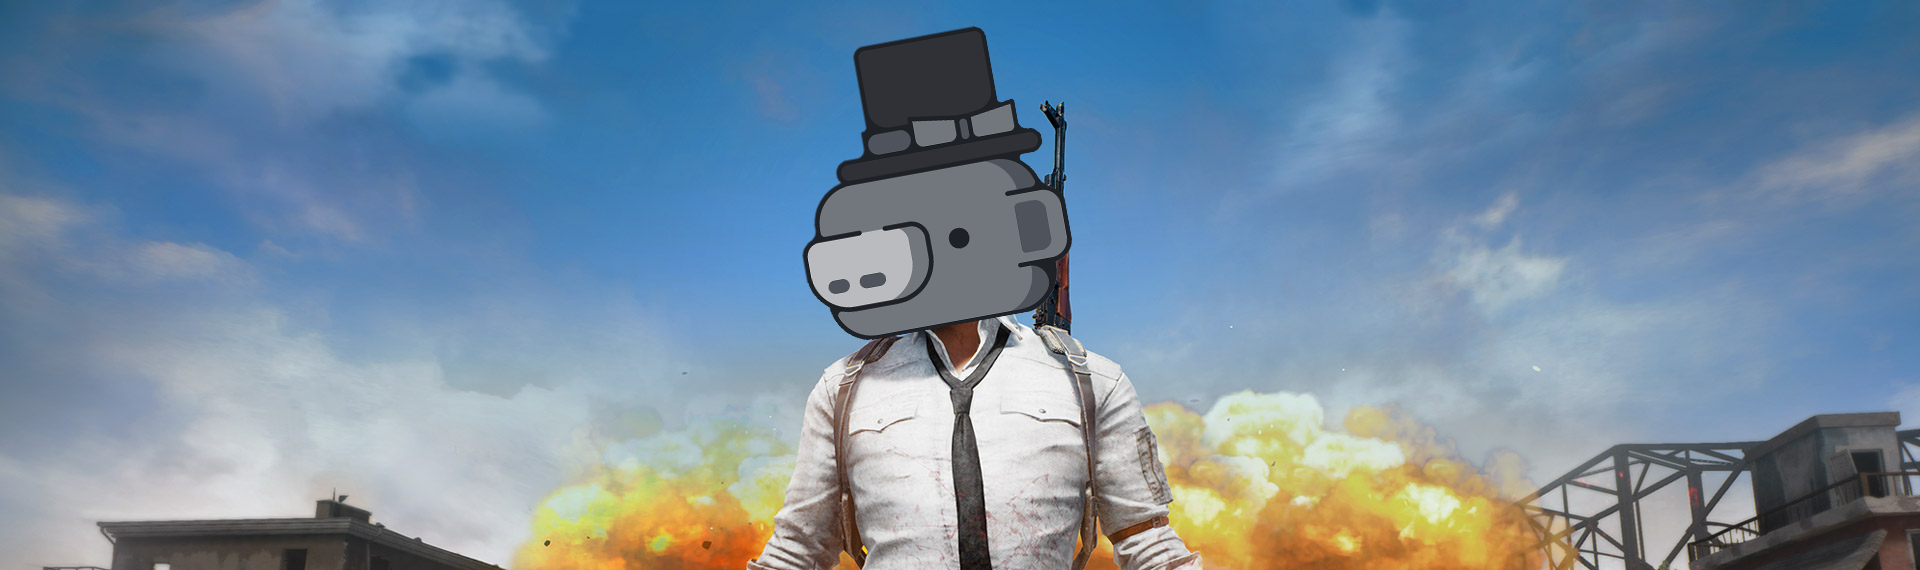 5 Great Discord Bots for PUBG - Chatbots Life